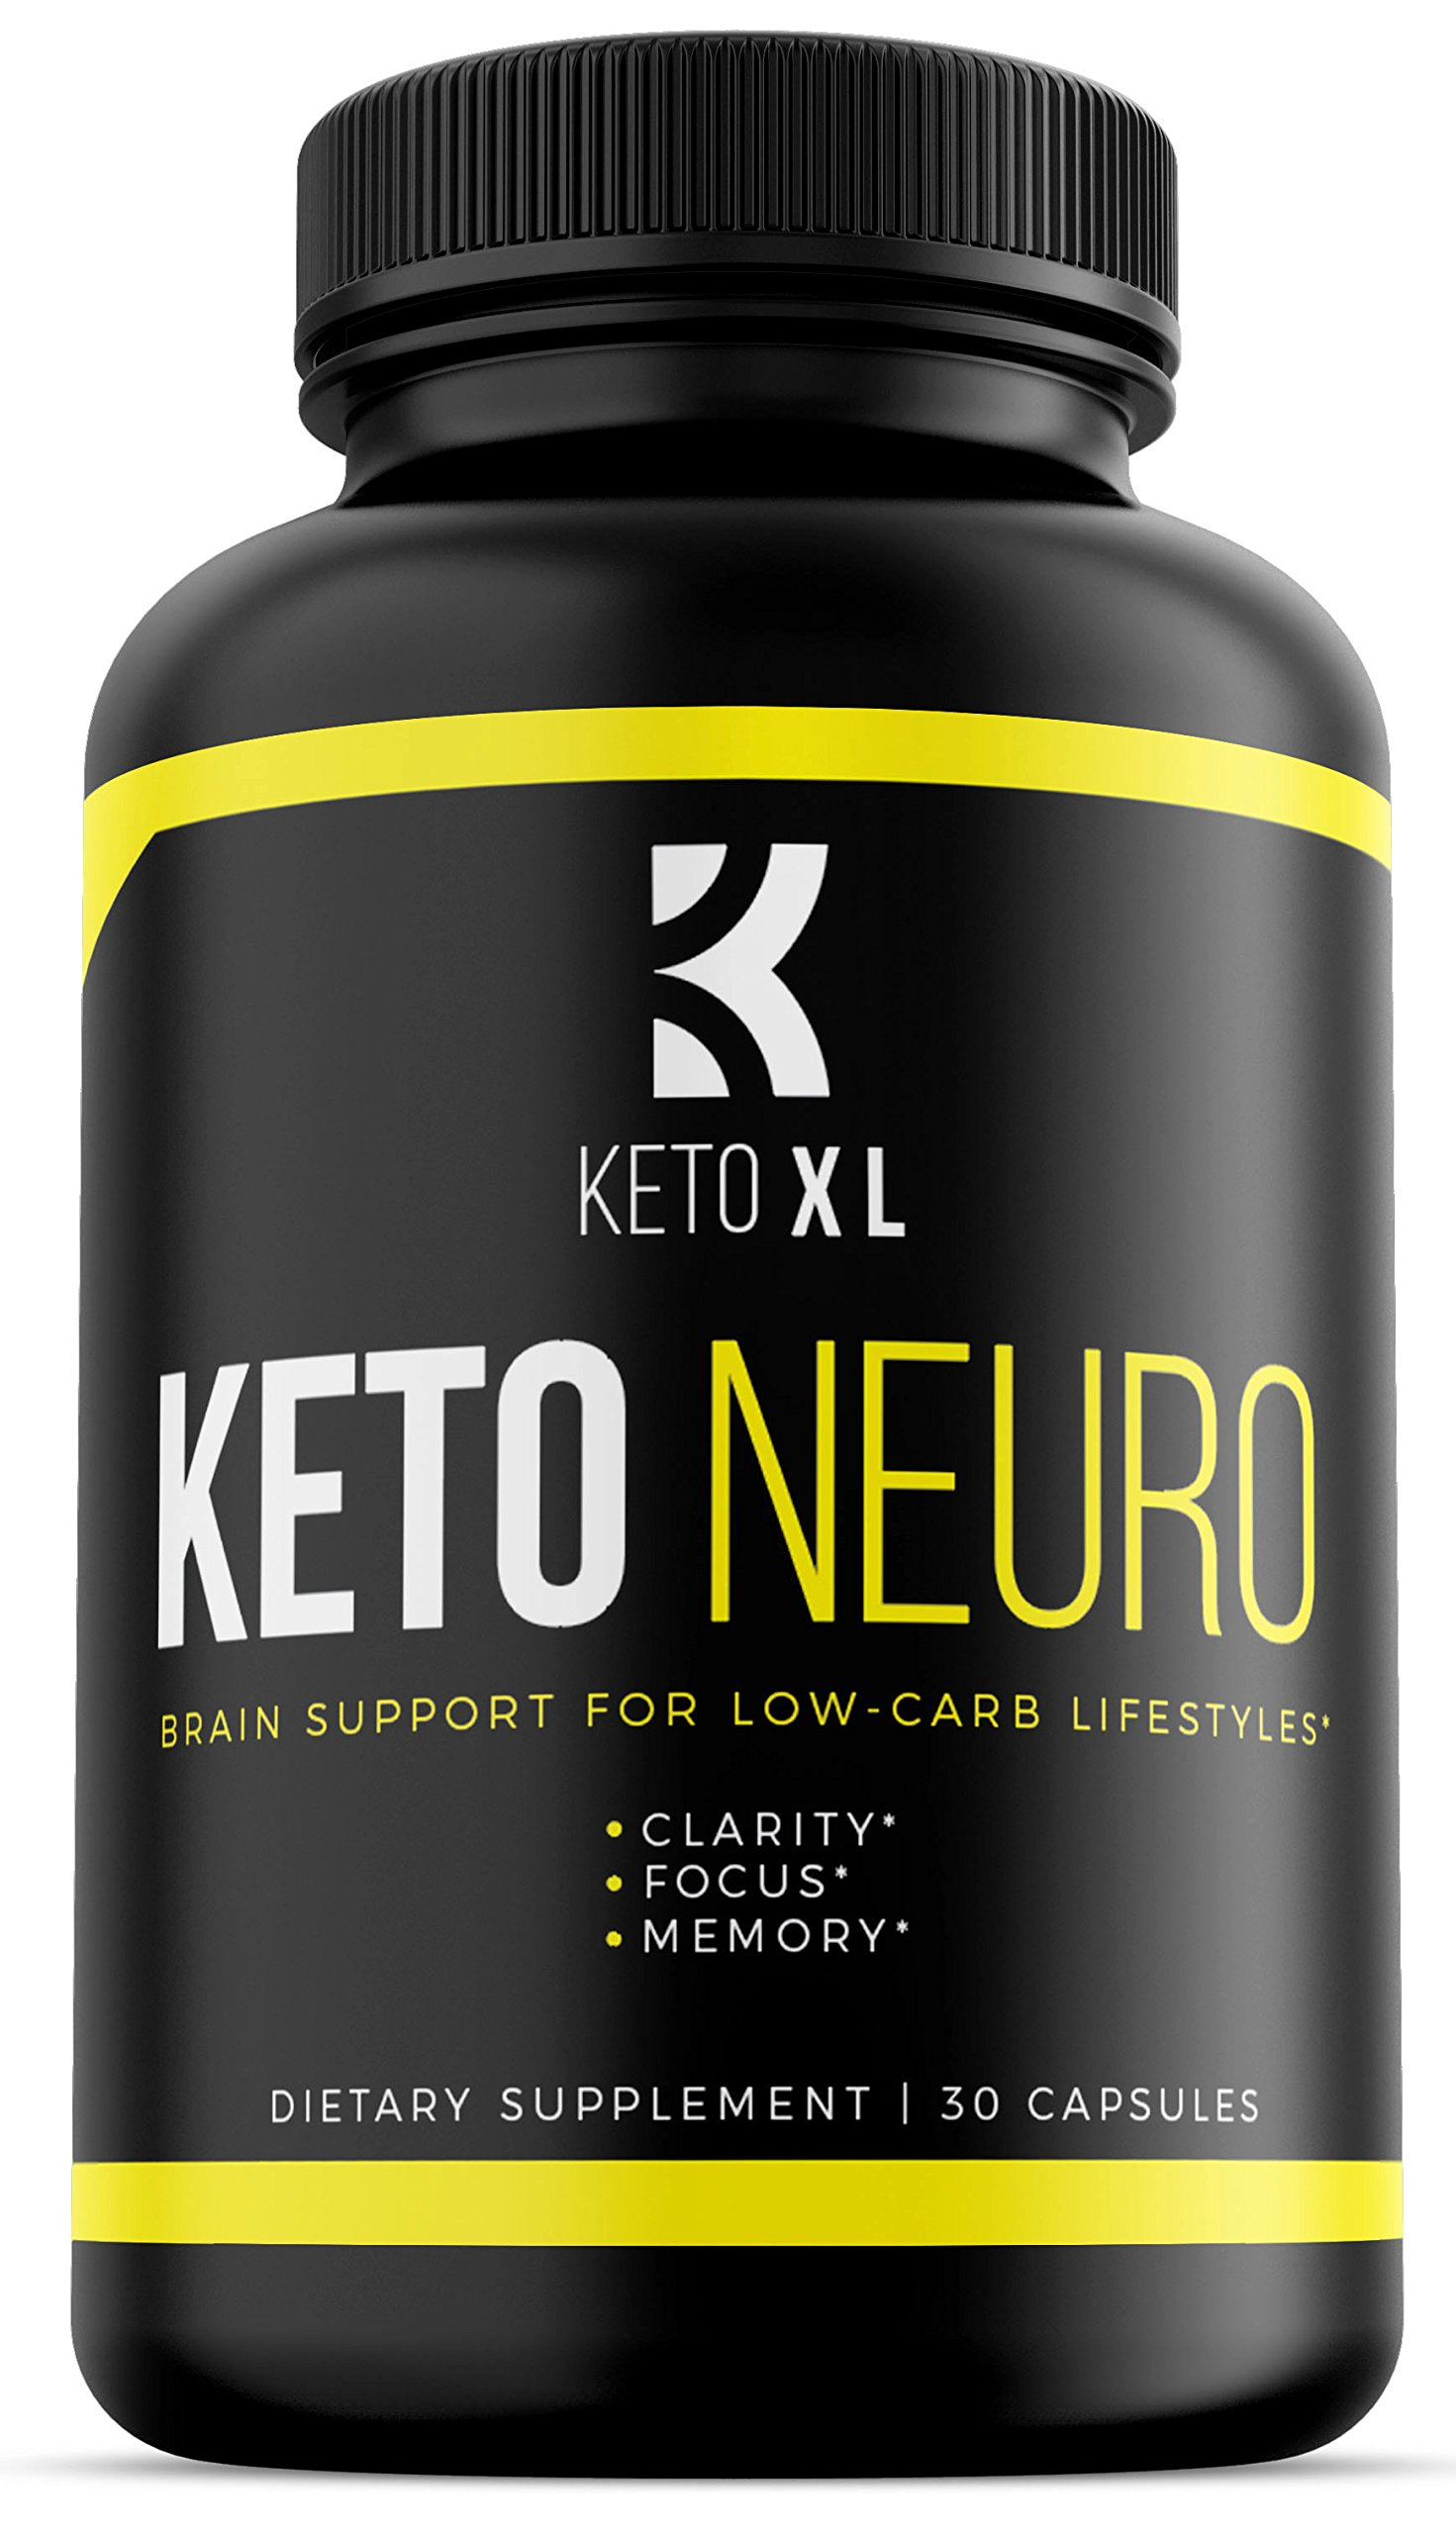 Keto Neuro | Brain Support Nootropic Supplement for Keto Diet and Low Carb Lifestyles | Memory, Focus, Clarity | Boost Energy, Mental Performance | Bacopa Monnieri, DMAE, Rhodiola Rosea, Ginkgo Biloba